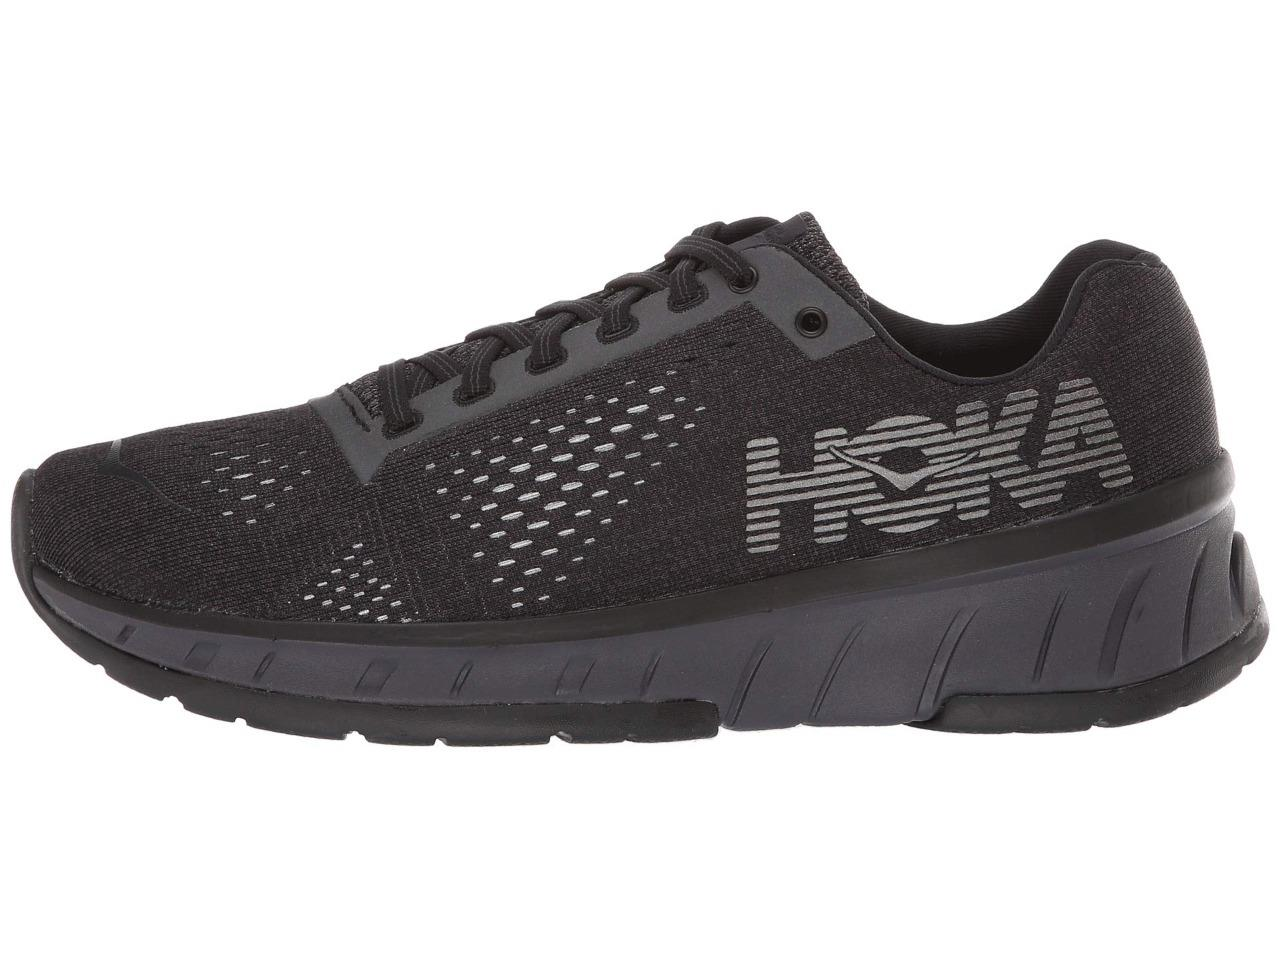 New Women/'s Hoka One One Cavu FN Running Shoes Sizes 5-5.5 Black 1099757 BNIR